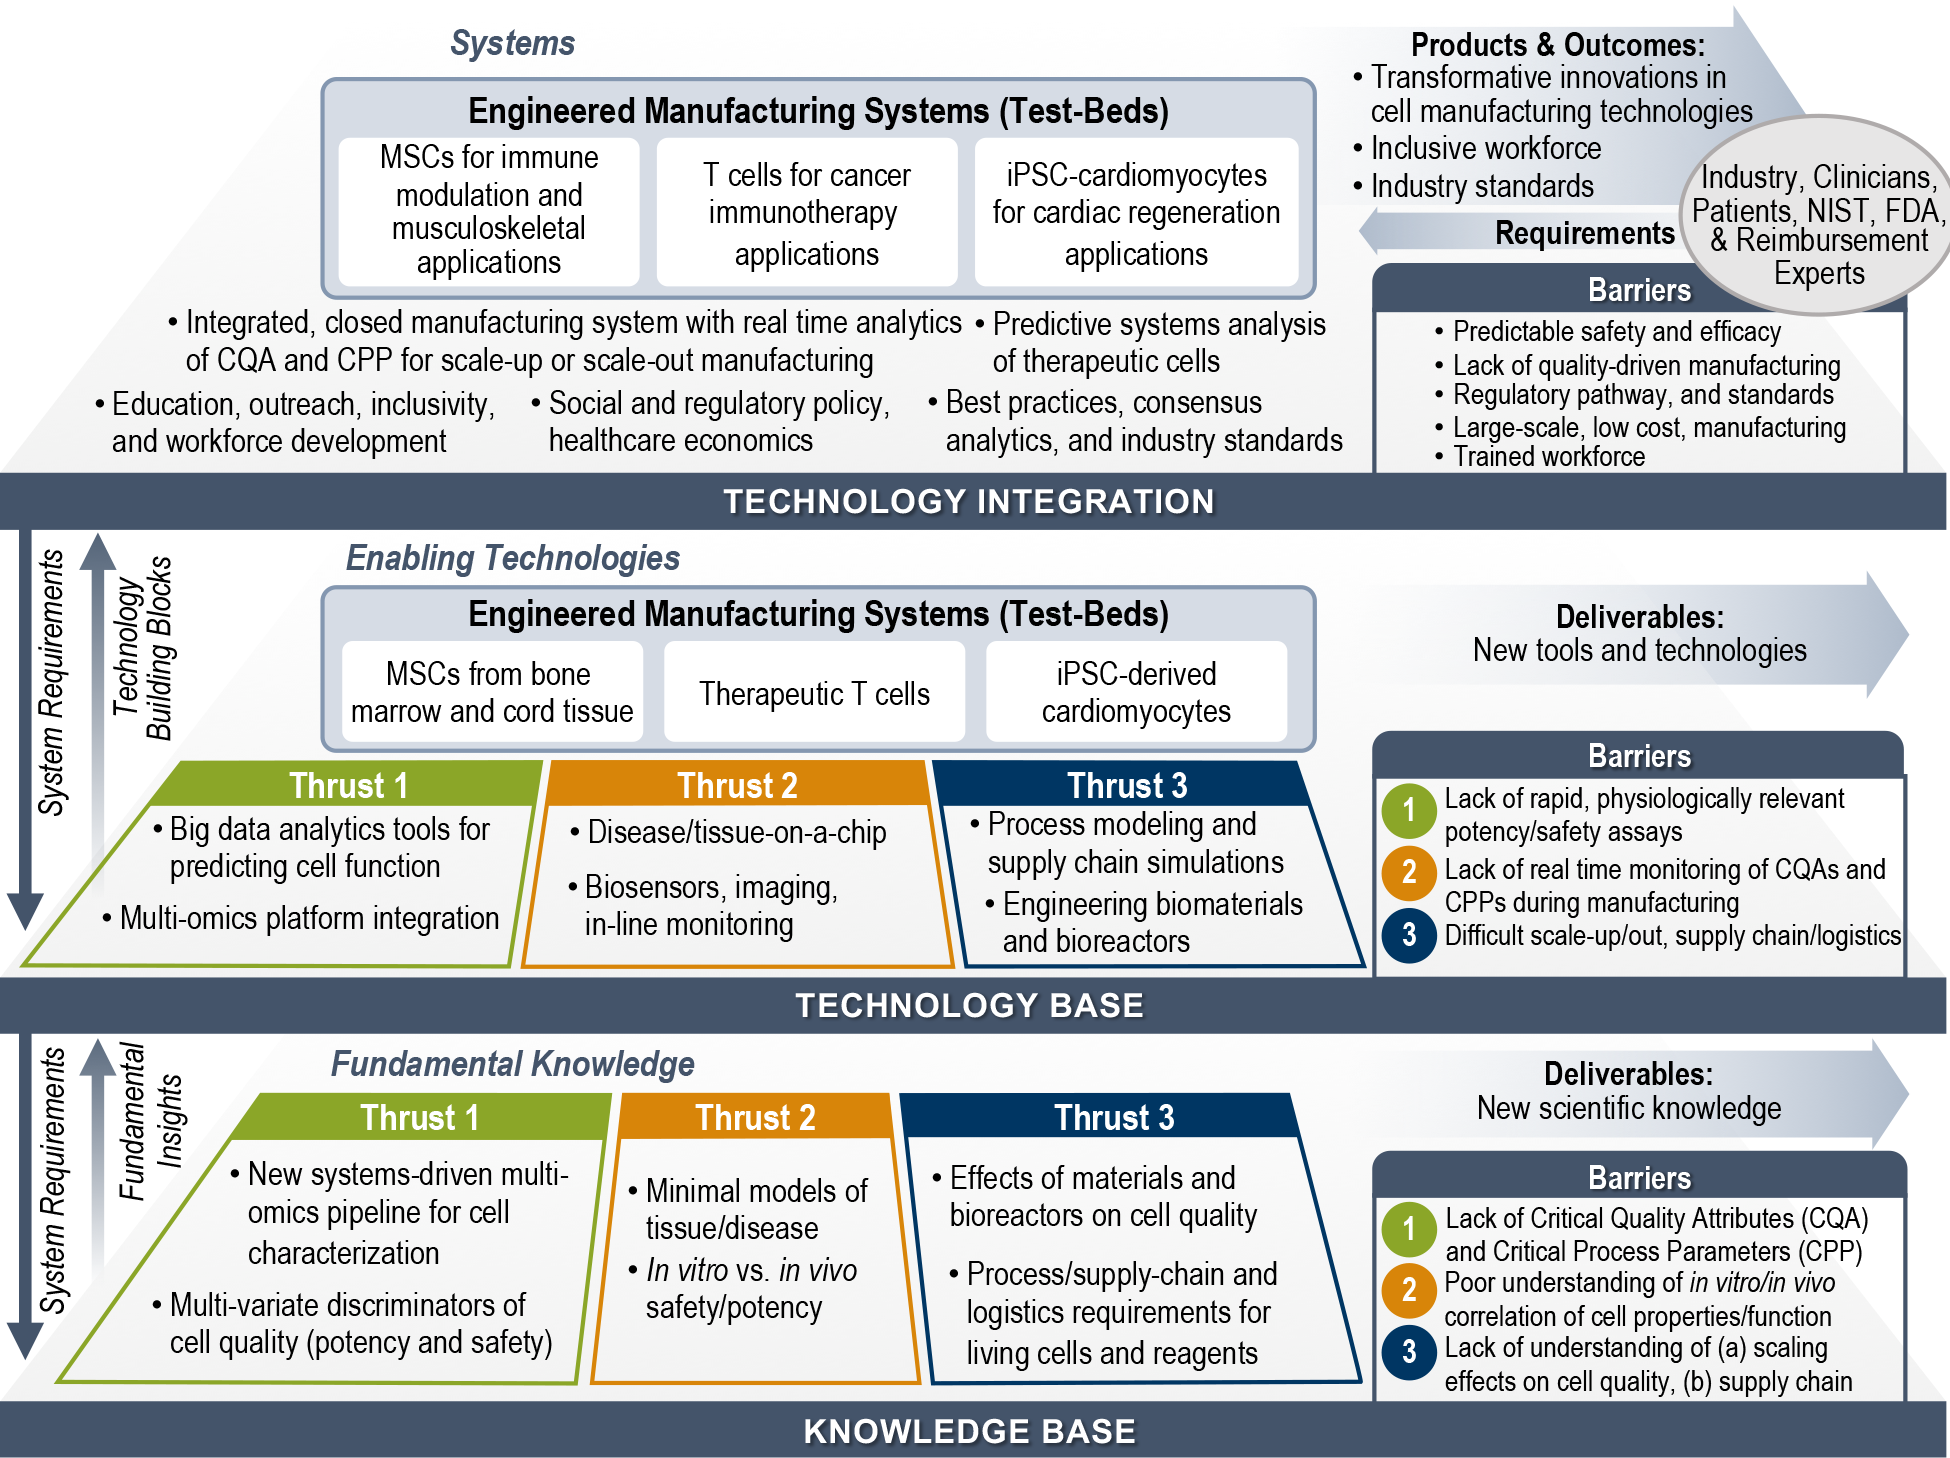 A 3 plane chart describing in detail the testbed manufacturing systems process with thrusts, technology and foundation knowledge